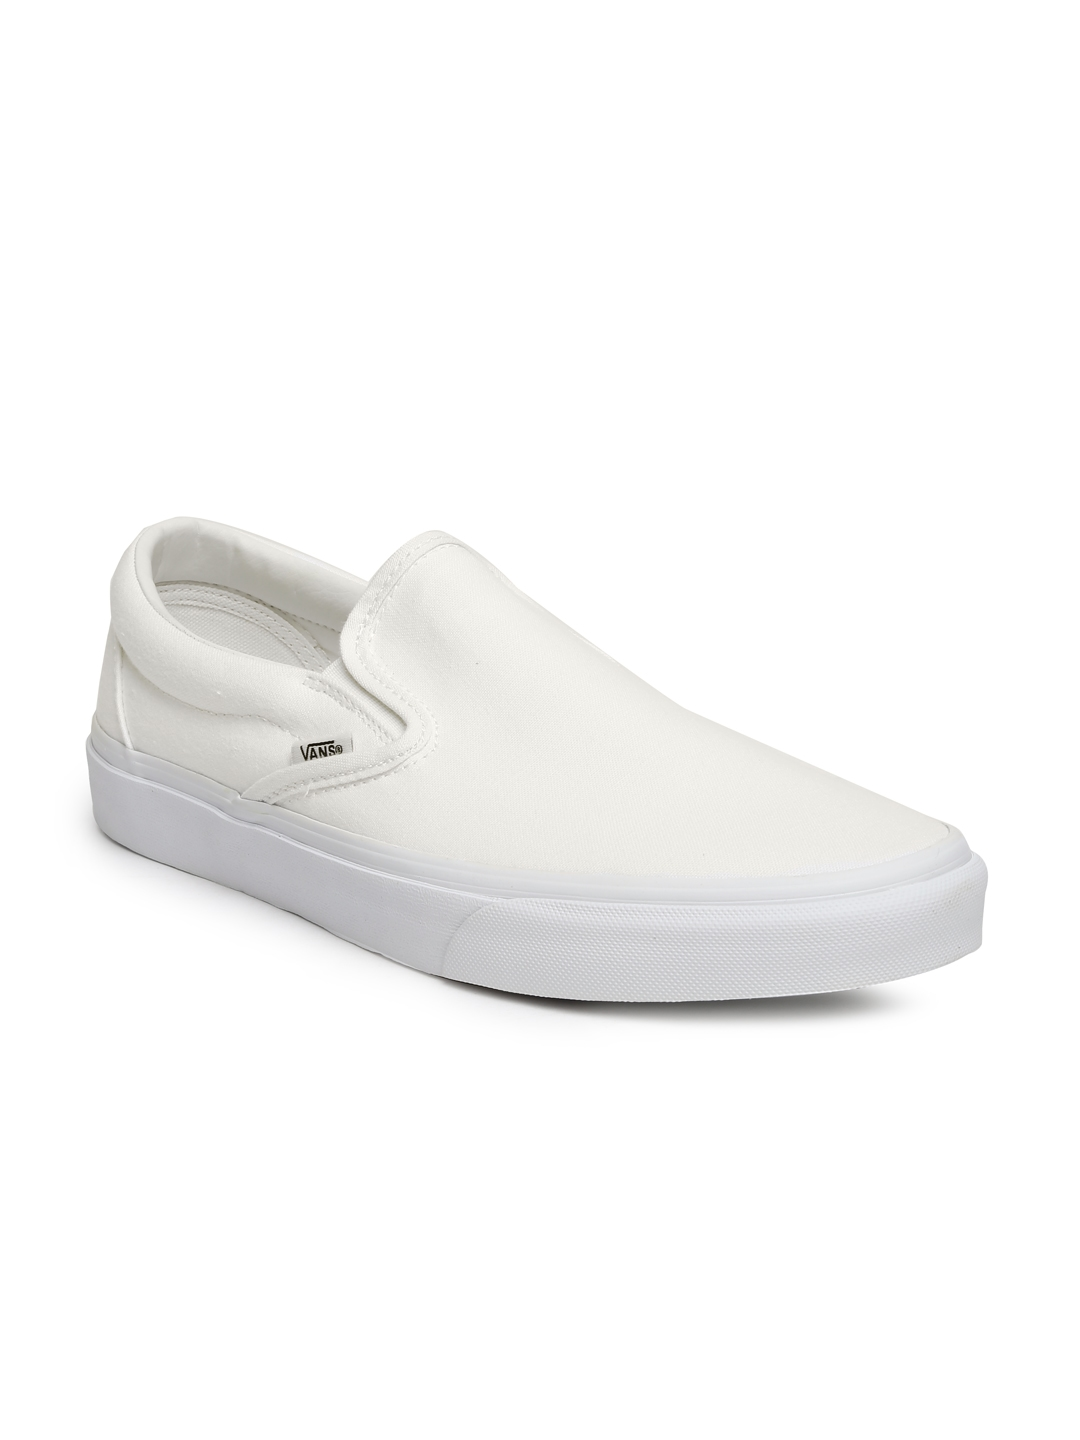 58ef2508a6 Buy Vans Men White Classic Slip On Sneakers - Casual Shoes for Men ...